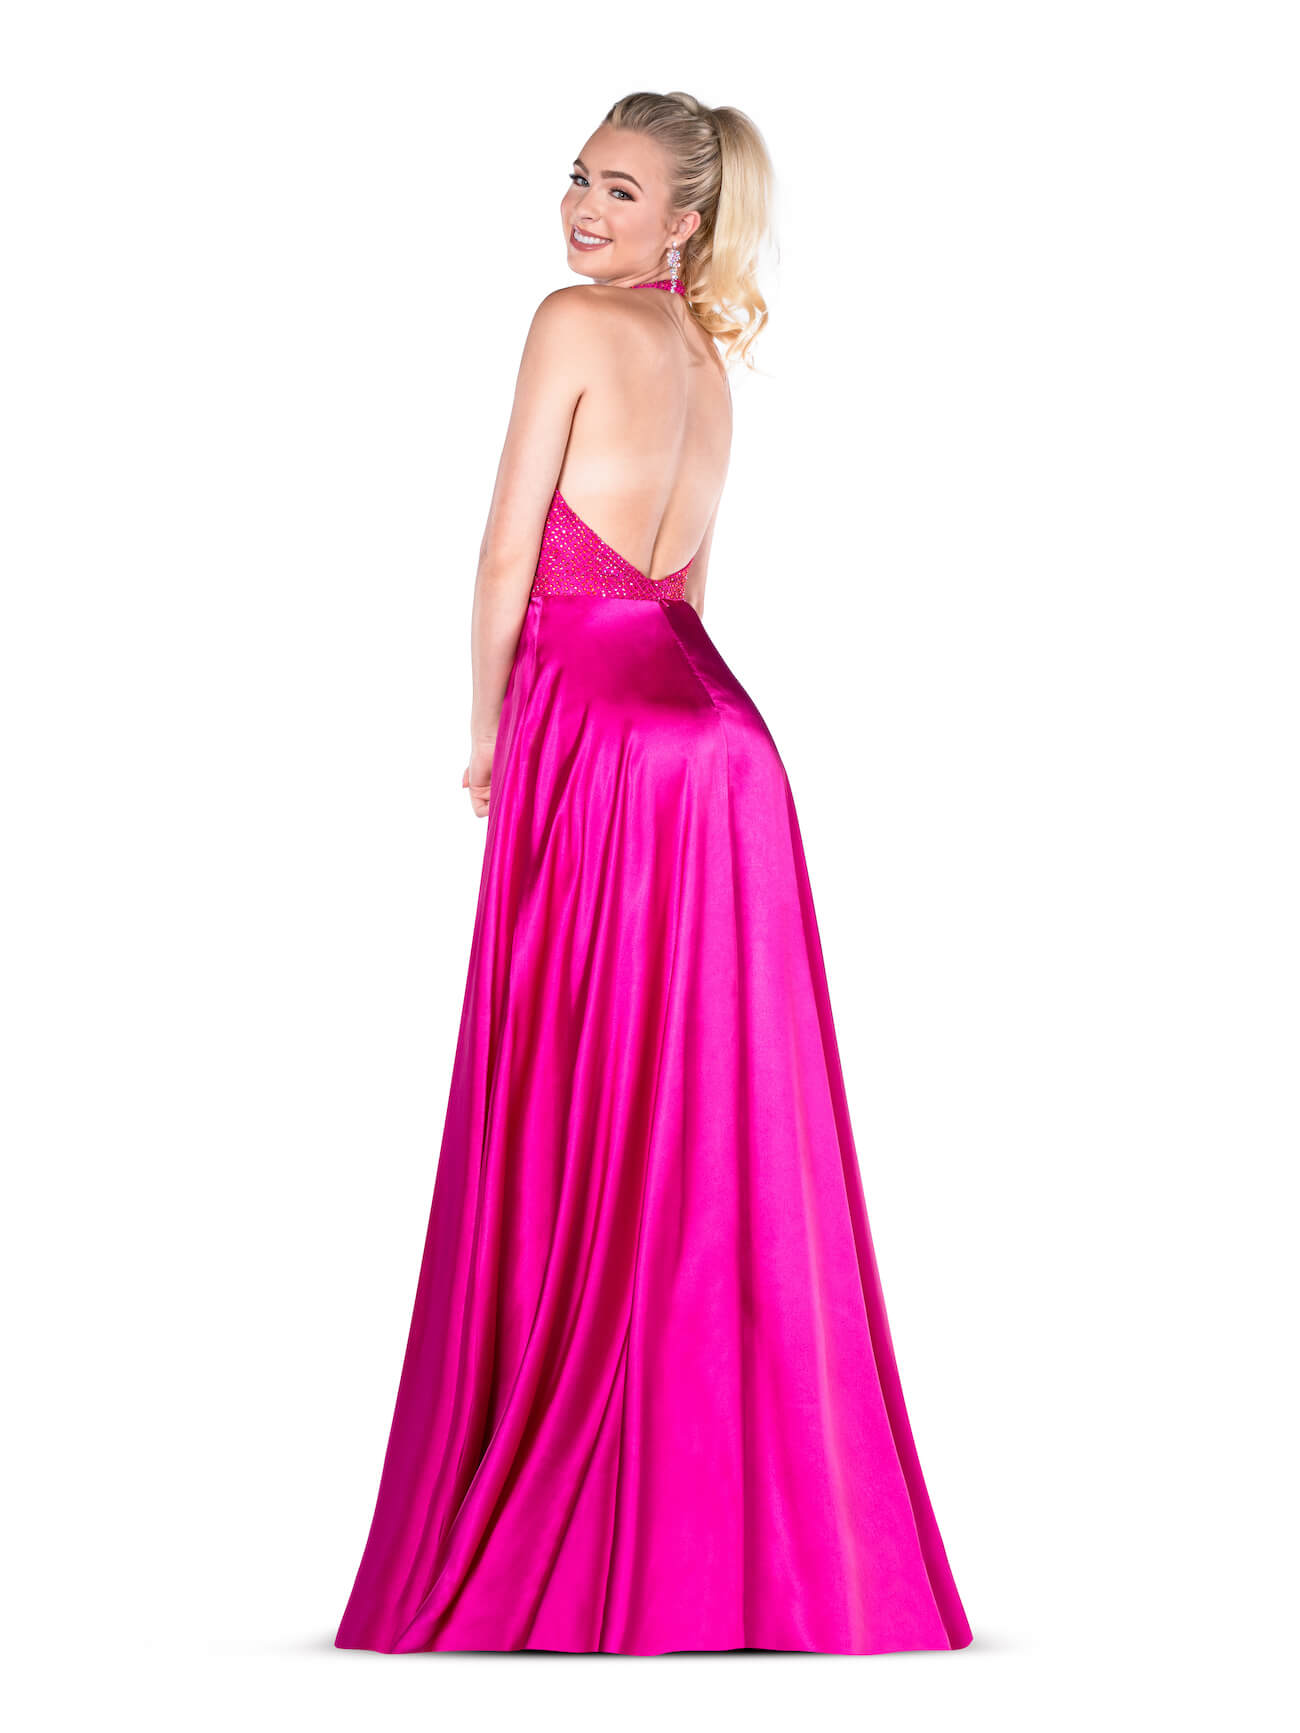 Vienna Purple Size 8 A-line Backless Side slit Dress on Queenly